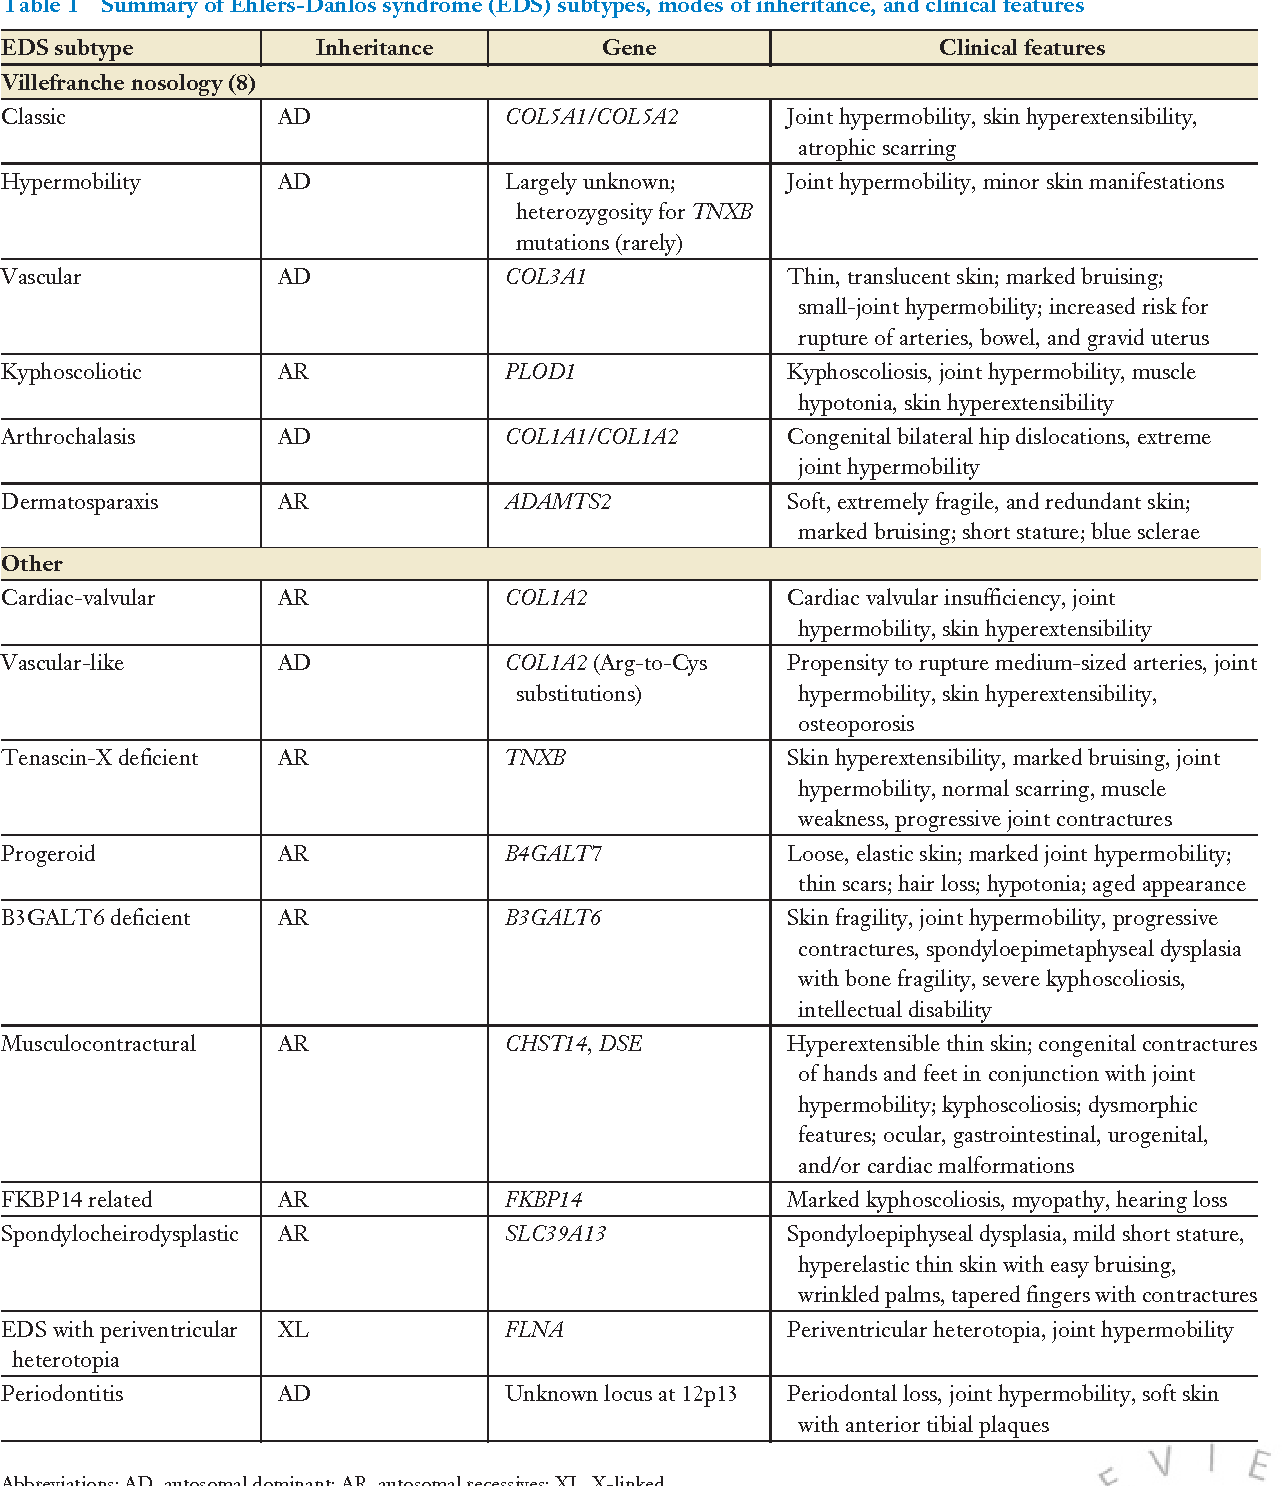 Table 1 From The Genetics Of Soft Connective Tissue